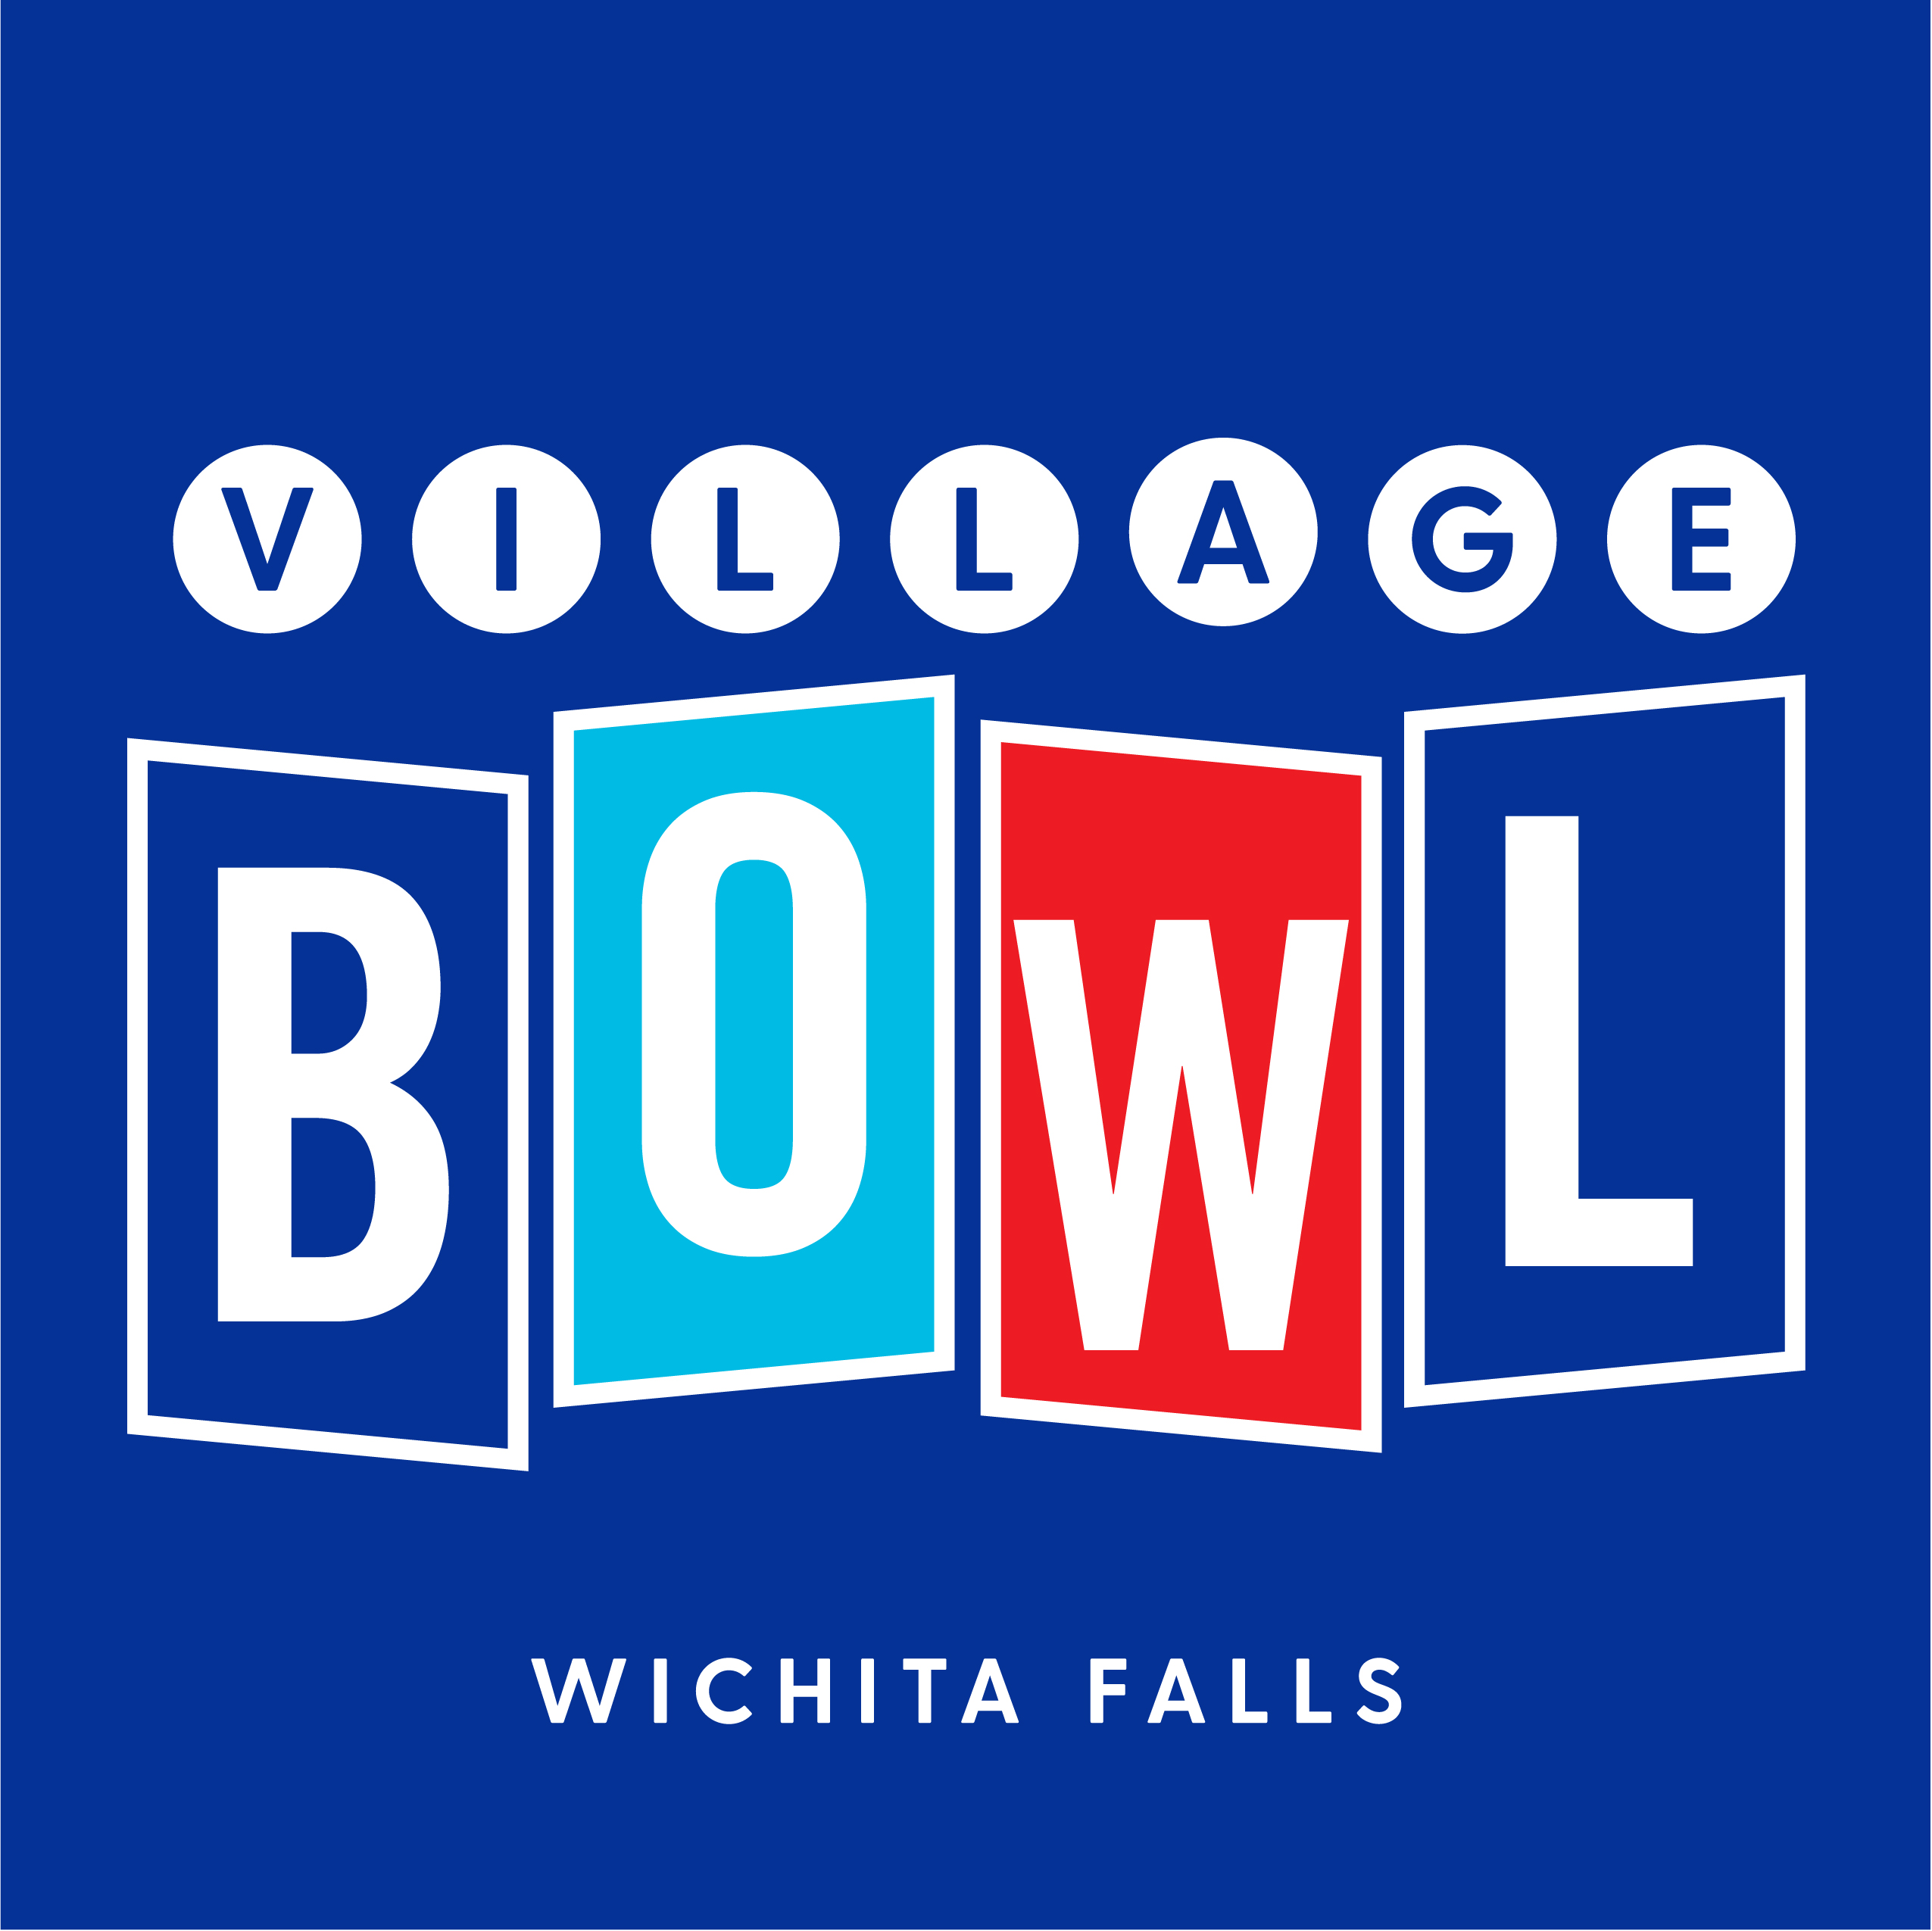 Village Bowl | Wichita Falls, TX 76308